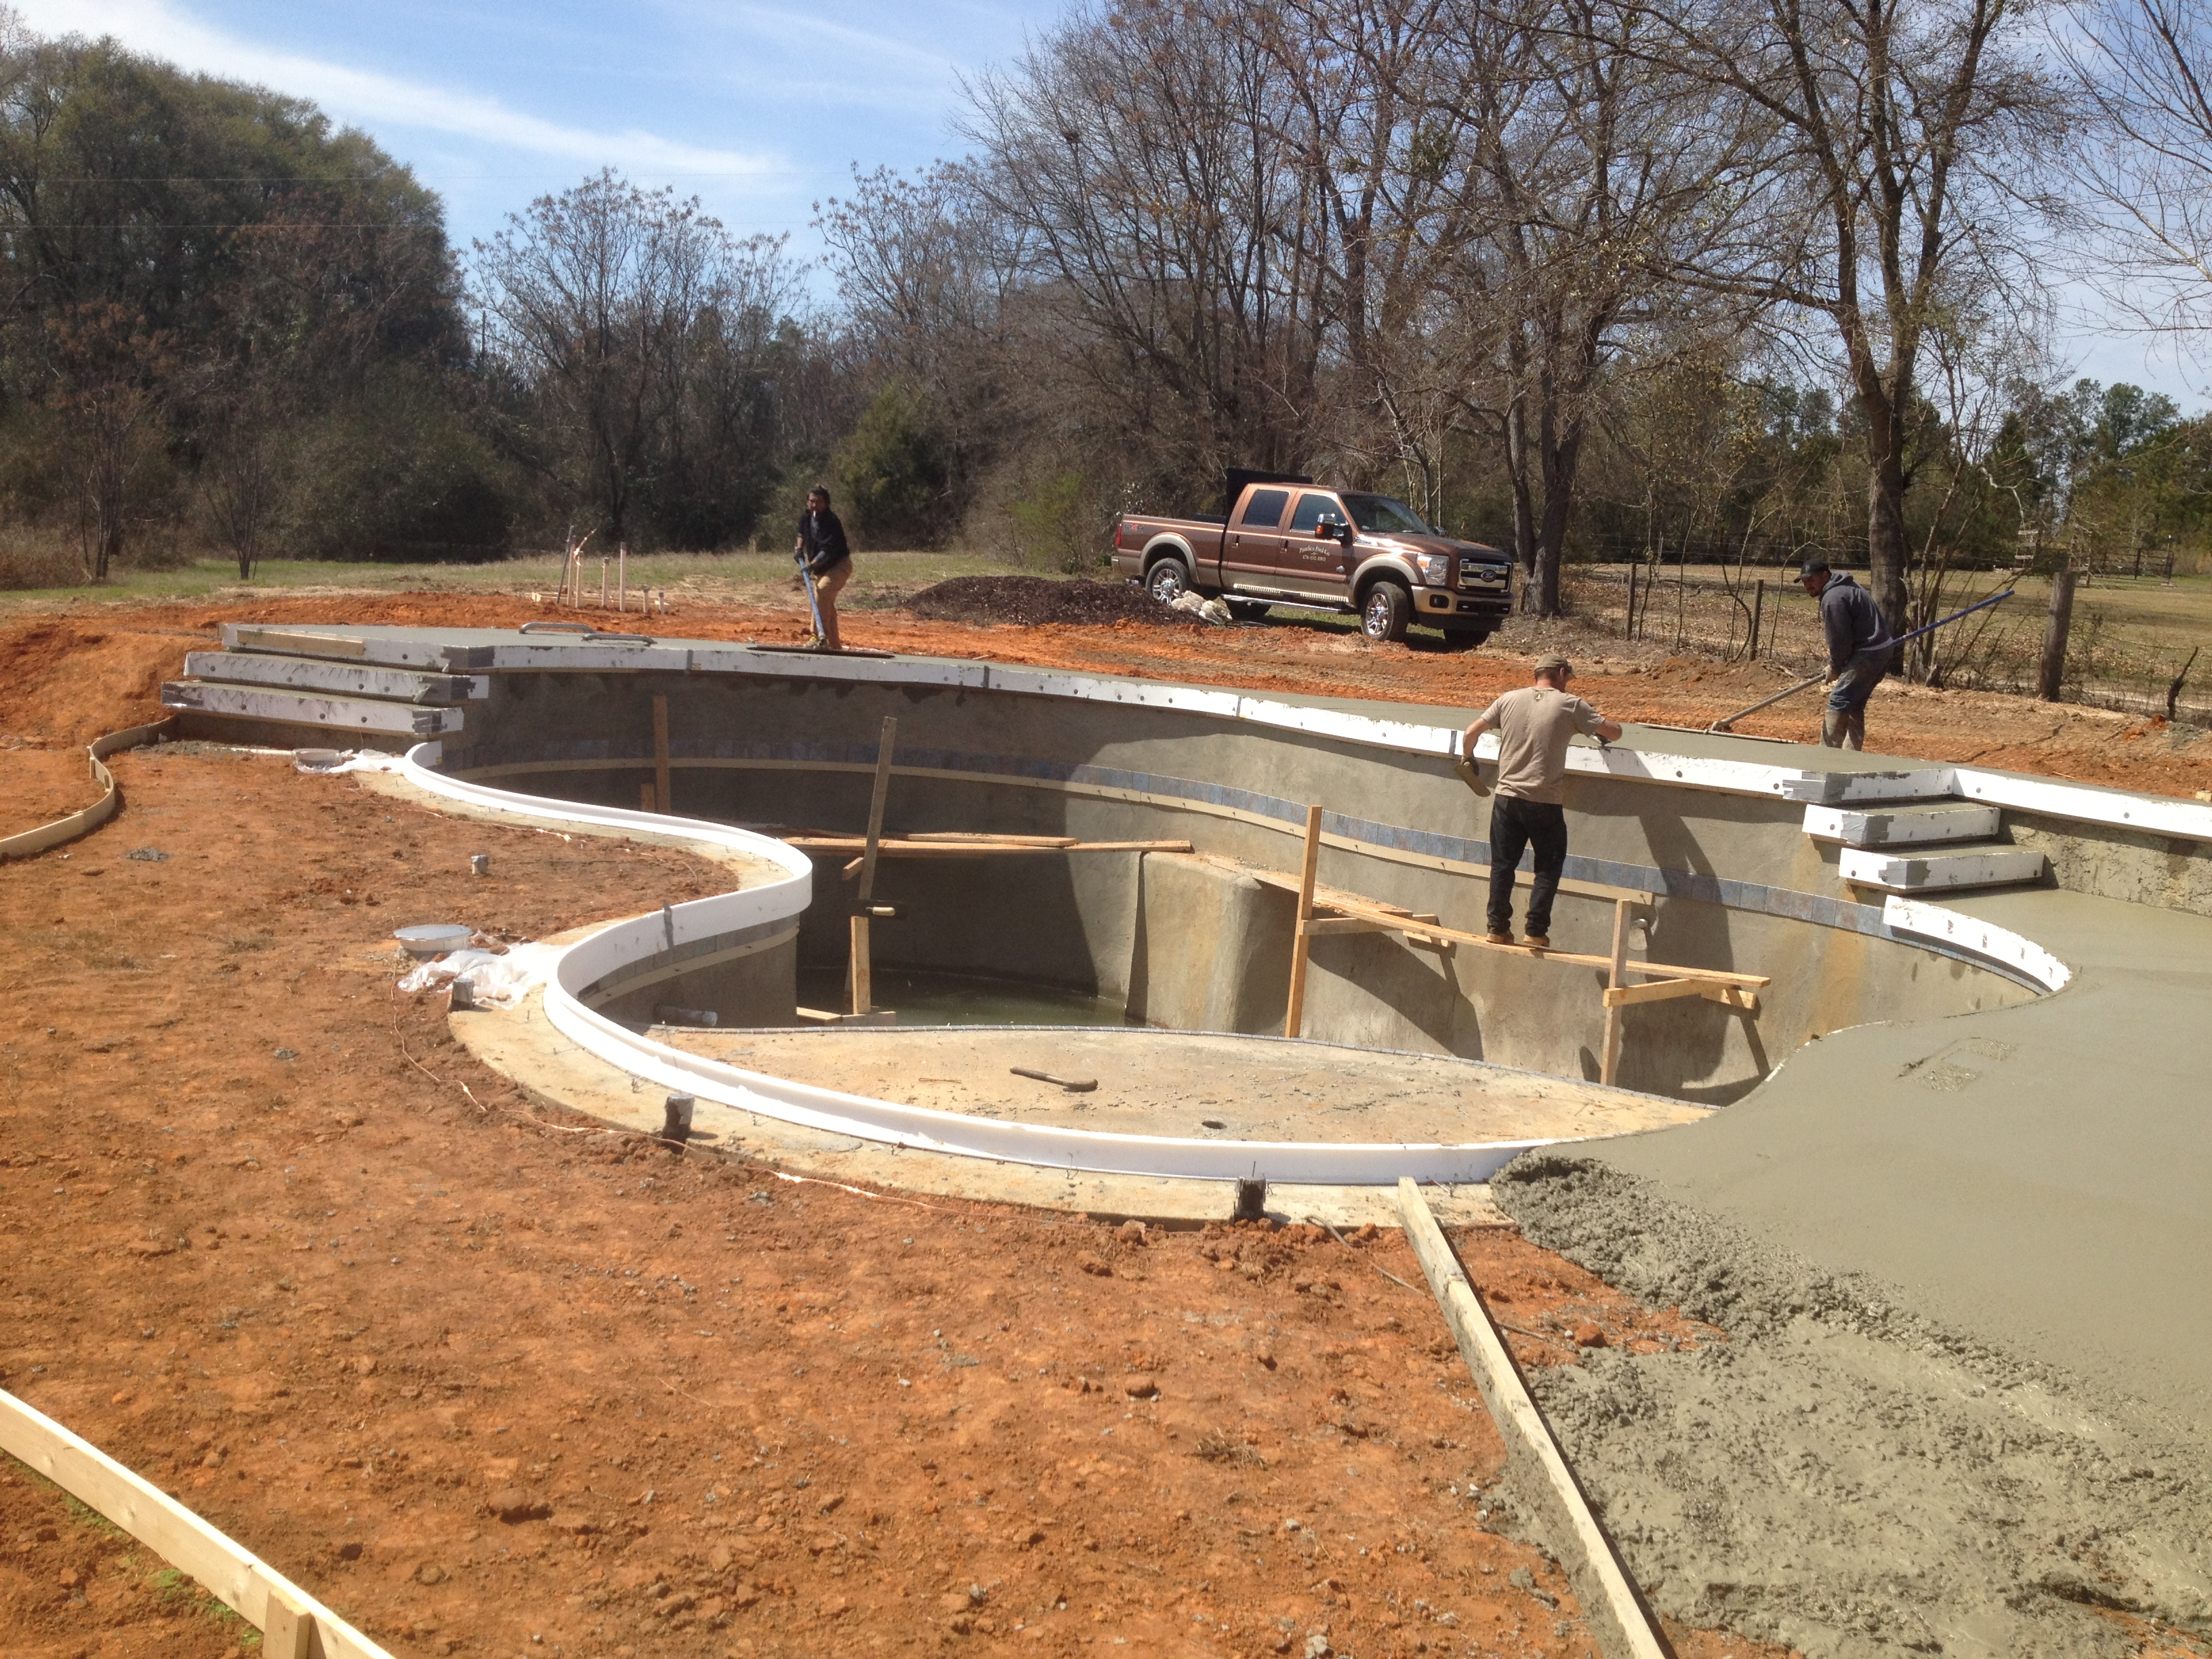 Swimming pool builder madison ga pamlico pool company for Concrete home builders in georgia